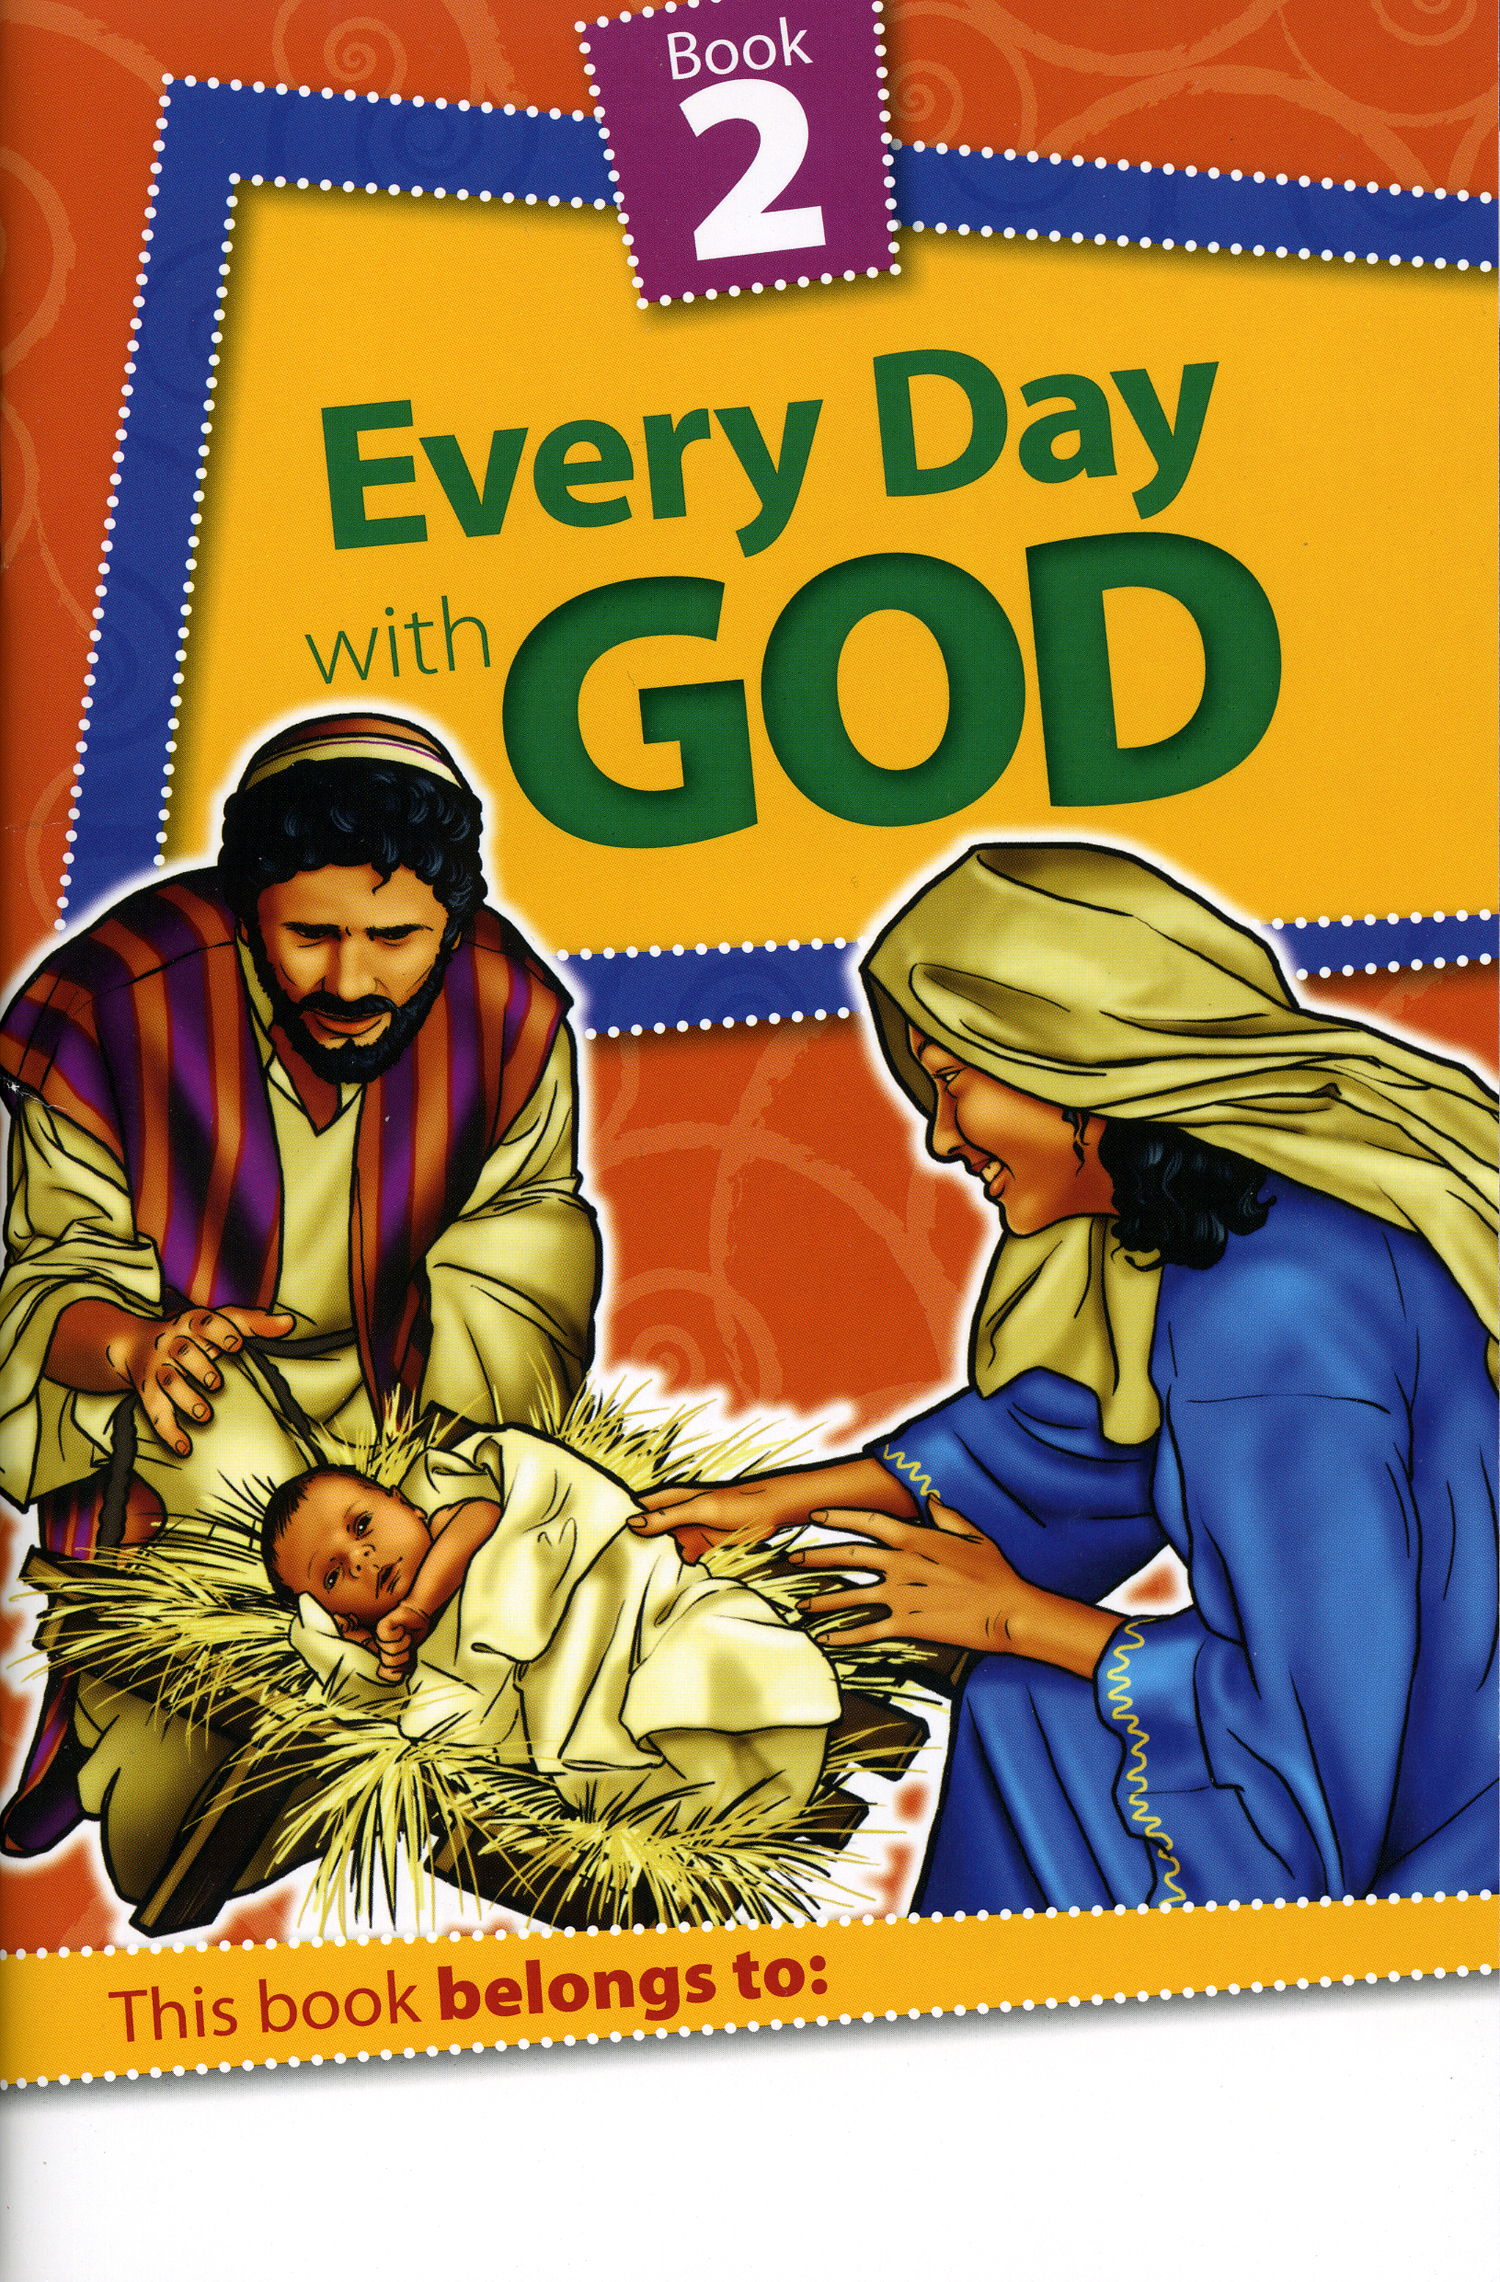 Every Day with God #2